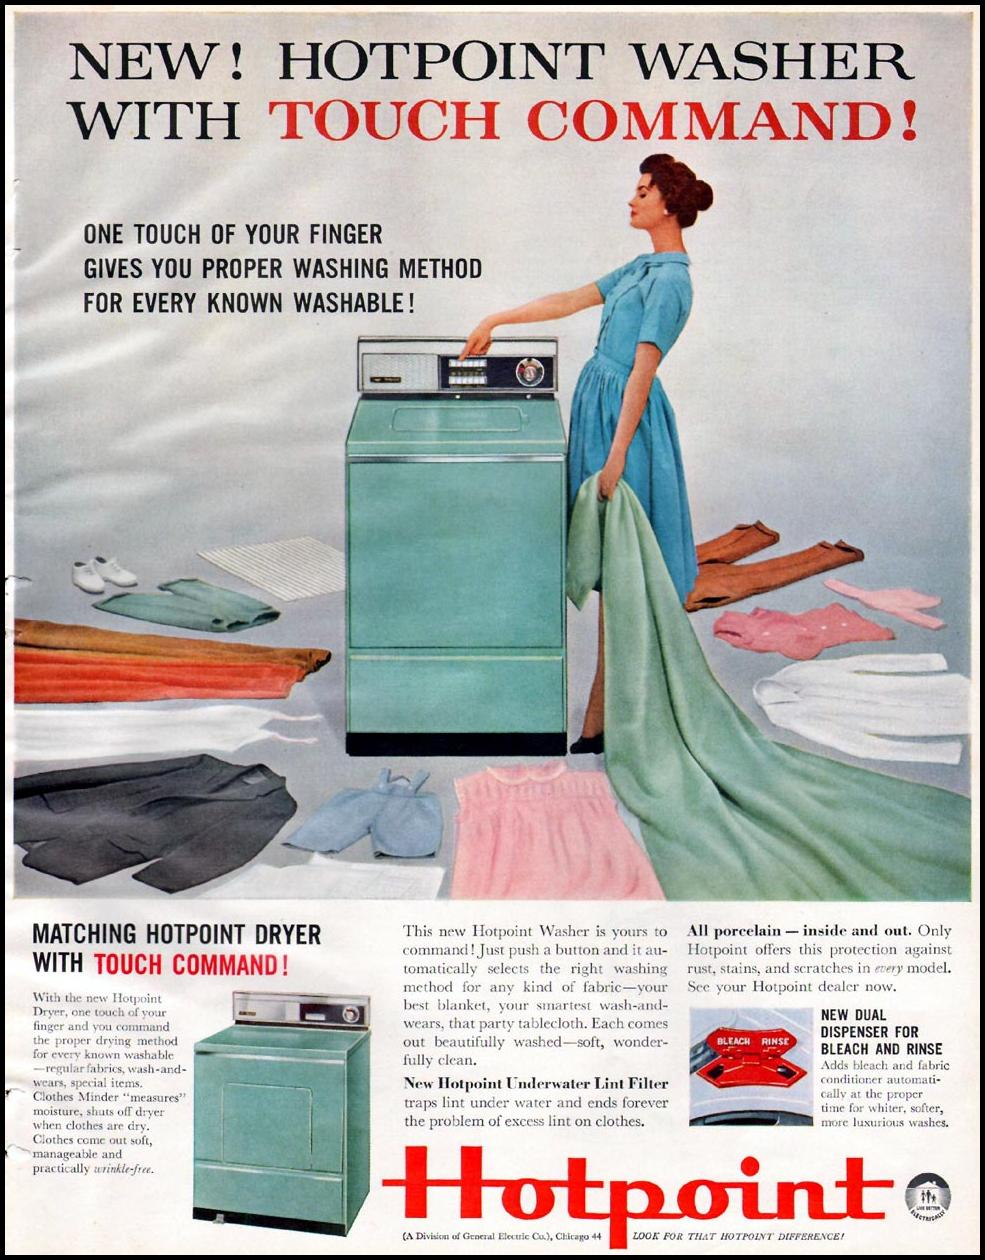 HOTPOINT WASHING MACHINES BETTER HOMES AND GARDENS 03/01/1960 p. 145